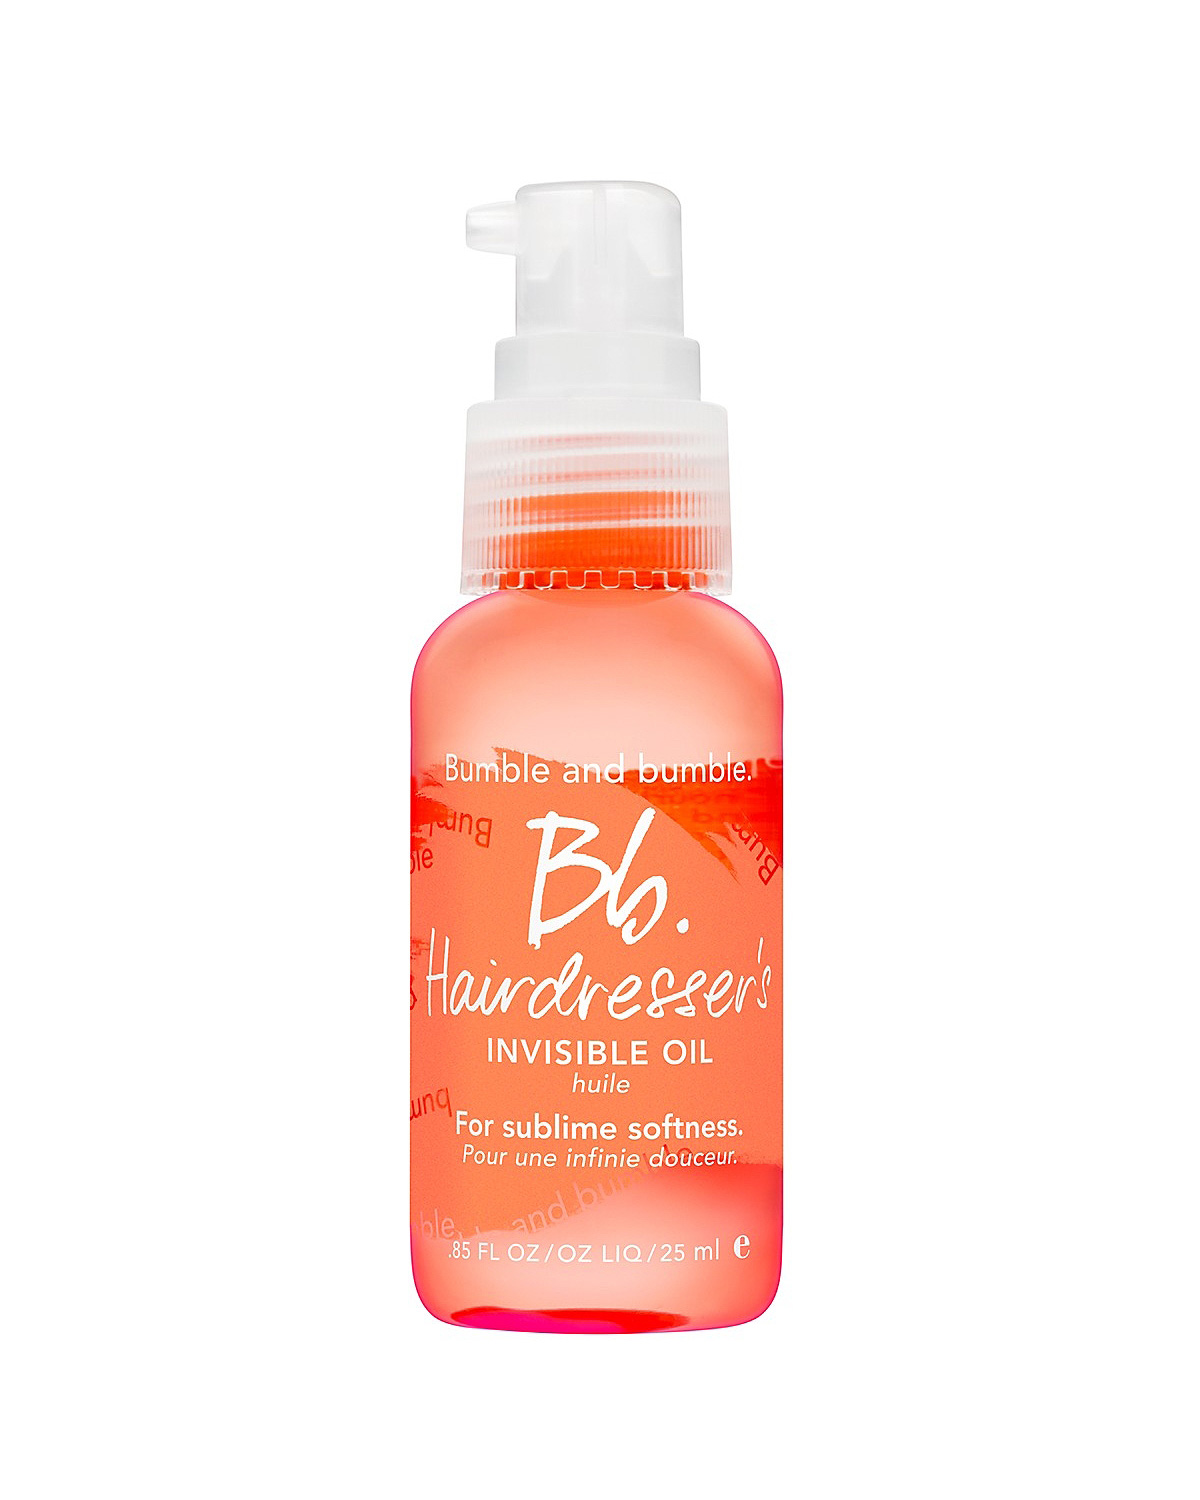 big-day-beauty-awards-bumble-and-bumble-hairdressers-invisible-oil-0216.jpg